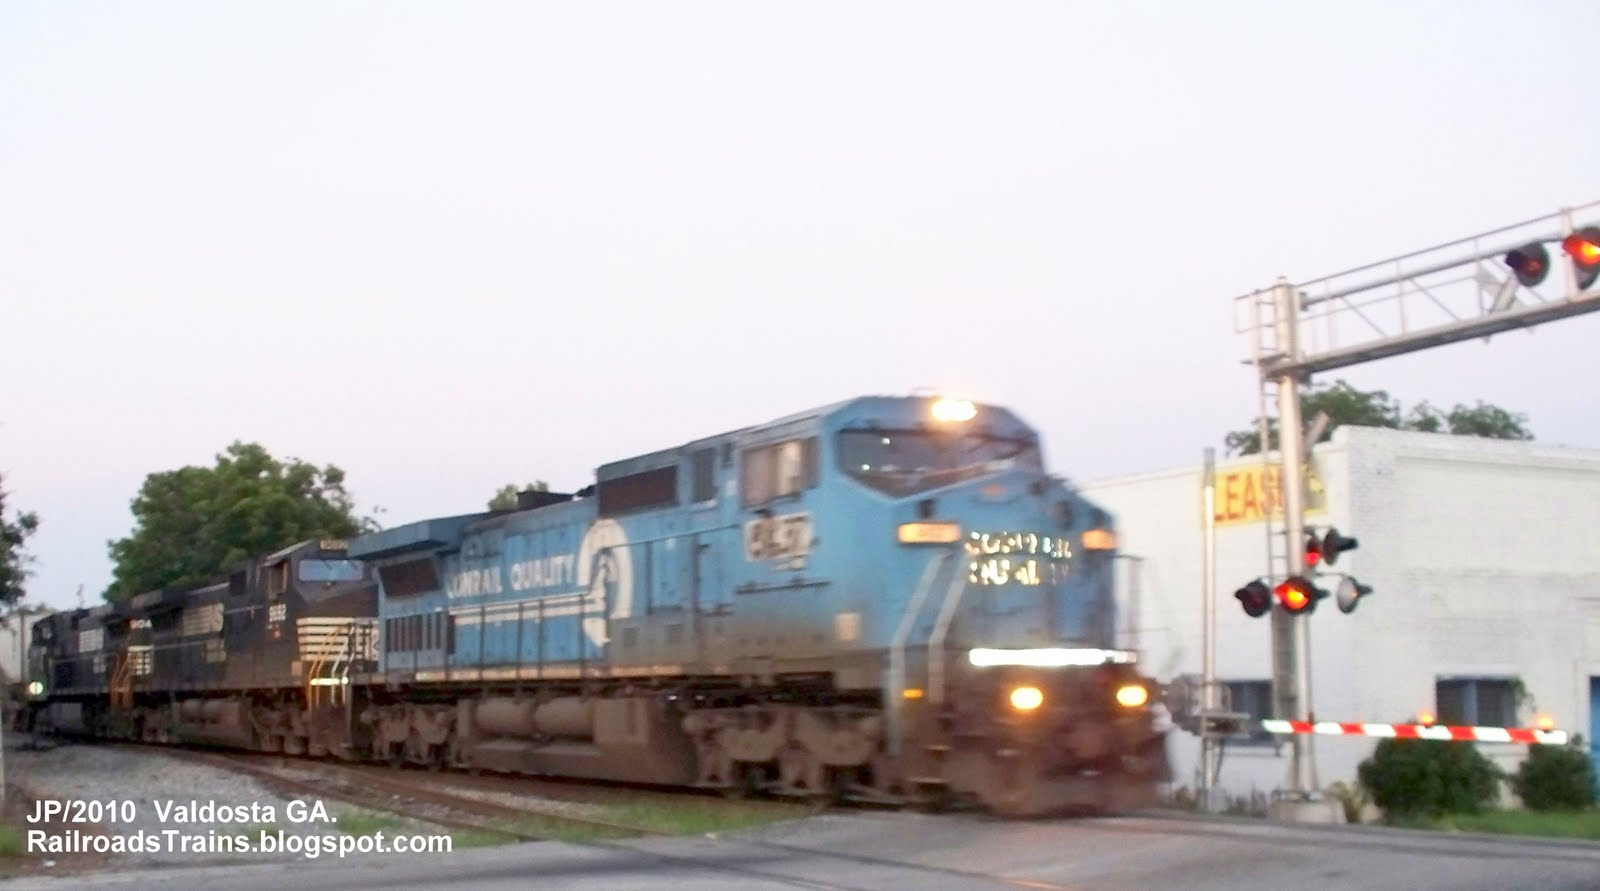 csx conrail merger Csx corp, the friendly merger partner of conrail inc, said late sunday night that it was in discussions with norfolk southern corp over the possible sale of material assets of conrail to norfolk southern after csx and conrail merge.